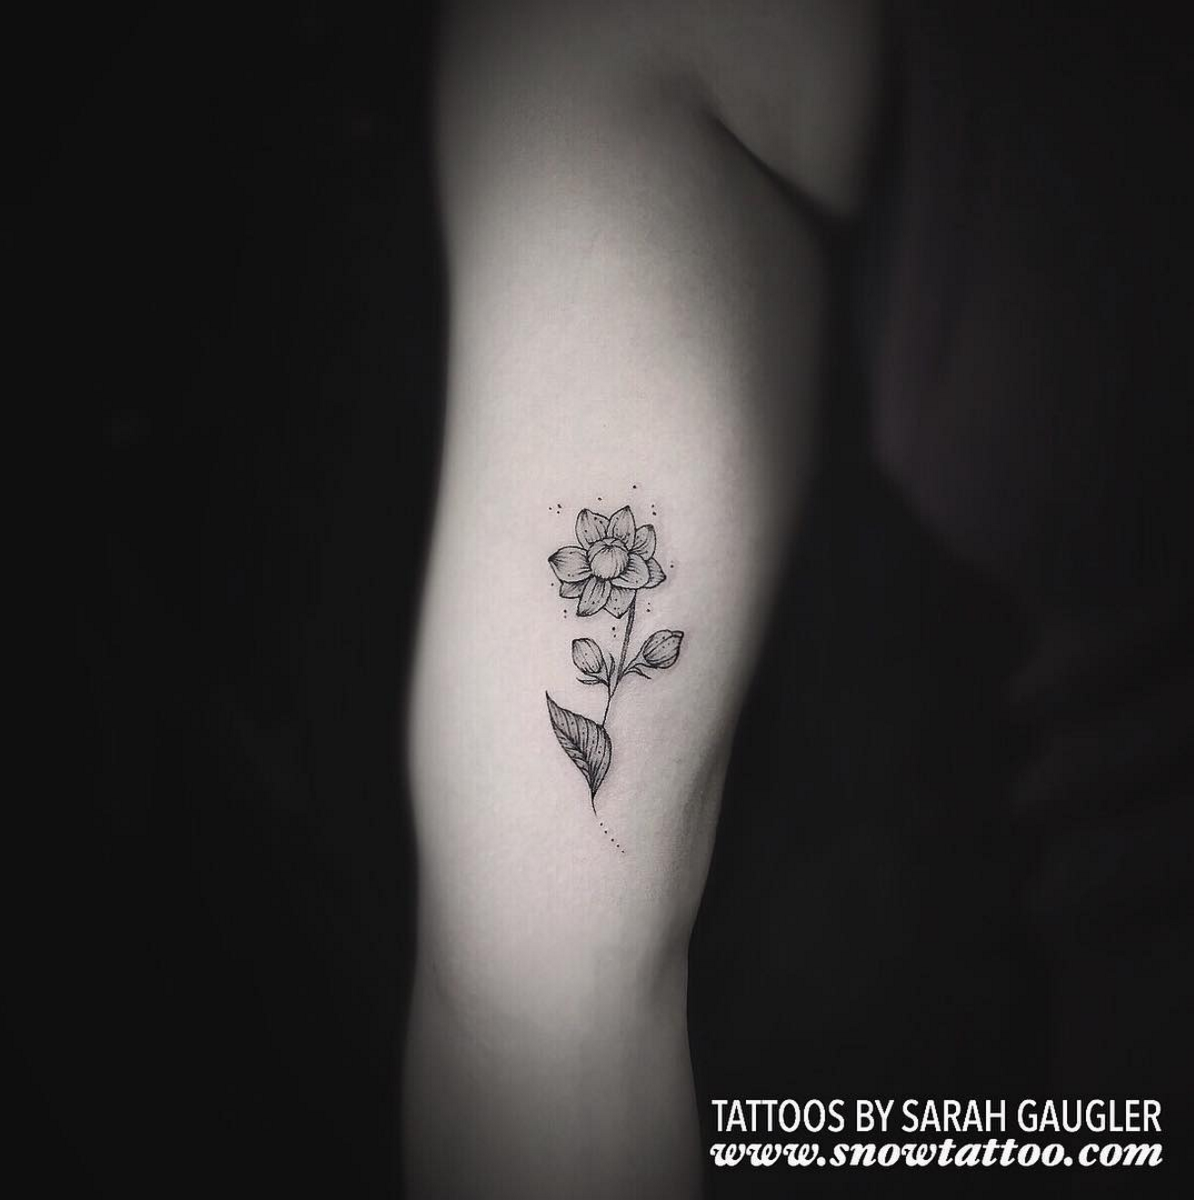 Sarah Gaugler Snow Tattoo Custom Floral Sampaguita New York Best Tattoos Best Tattoo Artist NYC.png